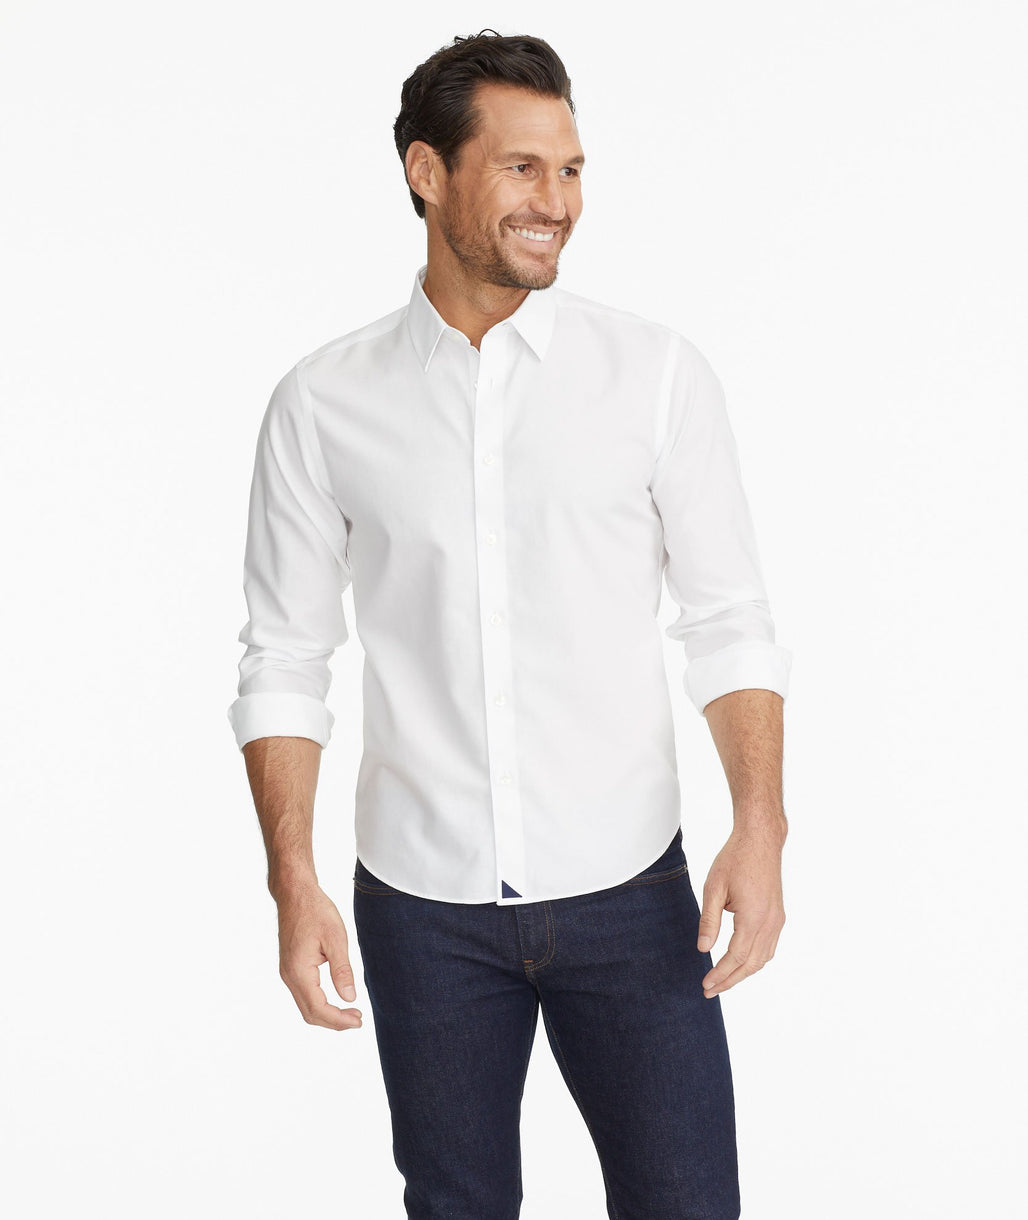 Model wearing a White Wrinkle-Free Las Cases Shirt